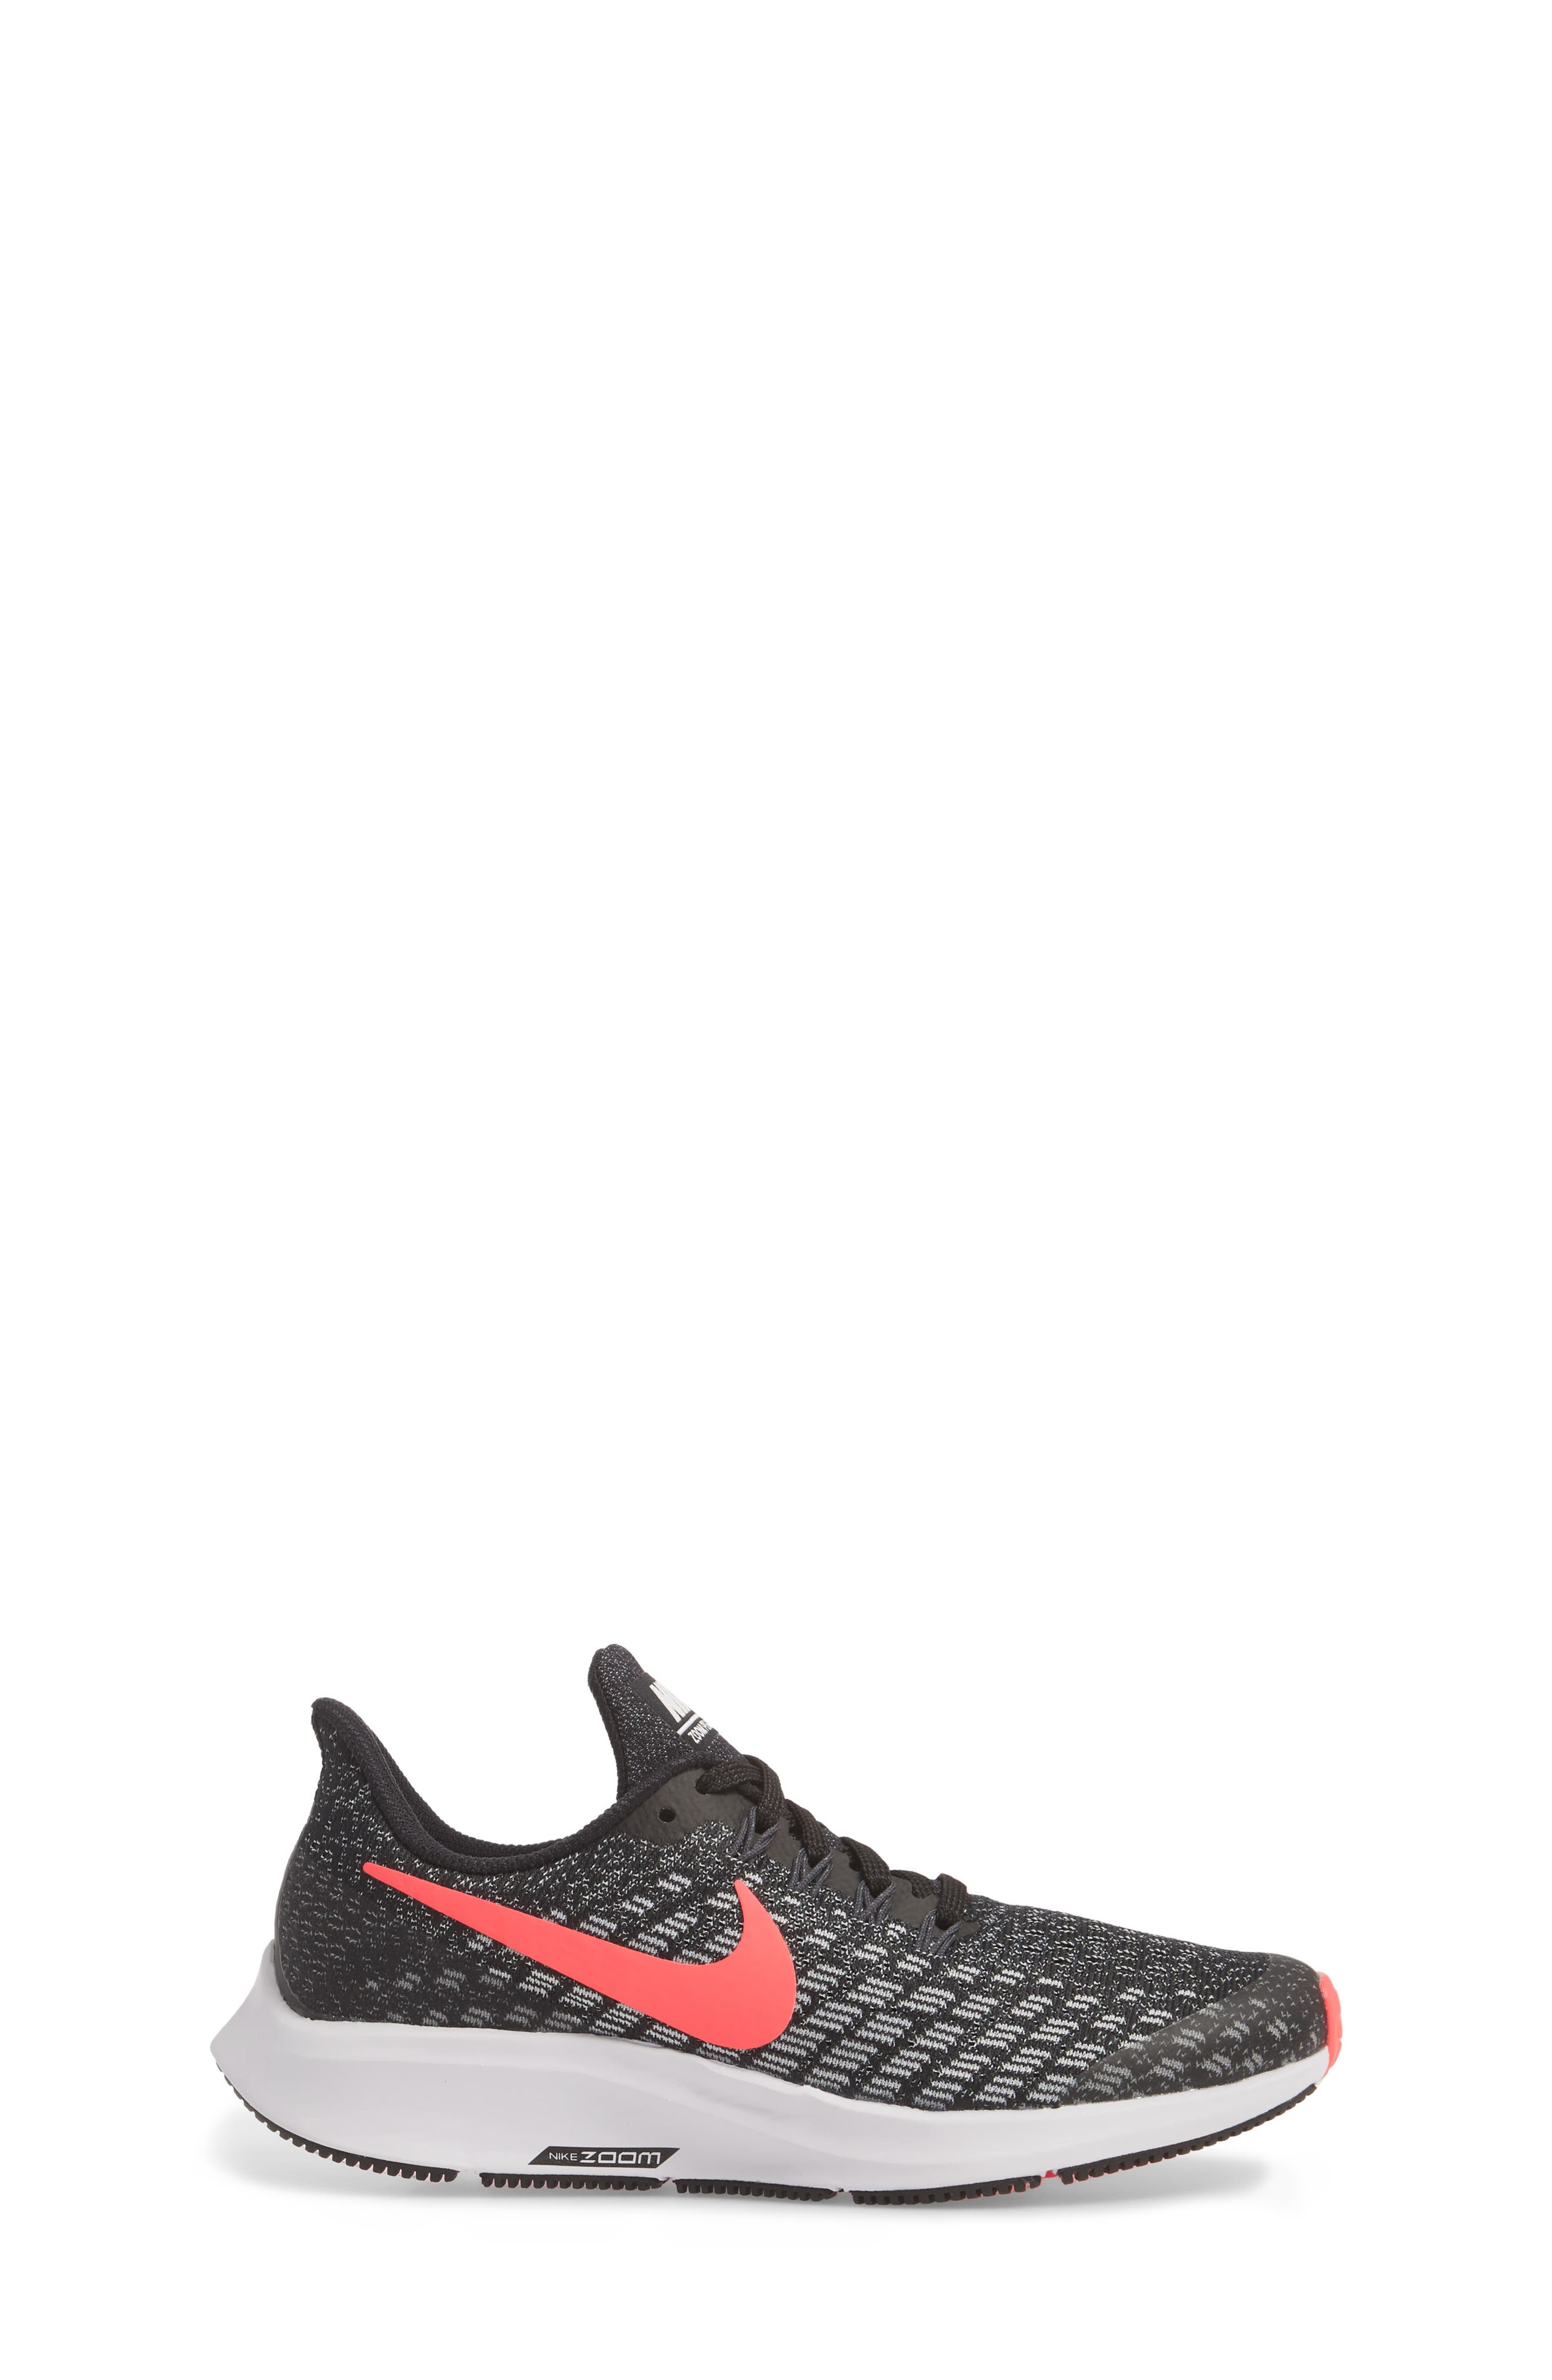 Air Zoom Pegasus 35 Sneaker,                             Alternate thumbnail 3, color,                             RACER PINK/ WHITE/ ANTHRACITE